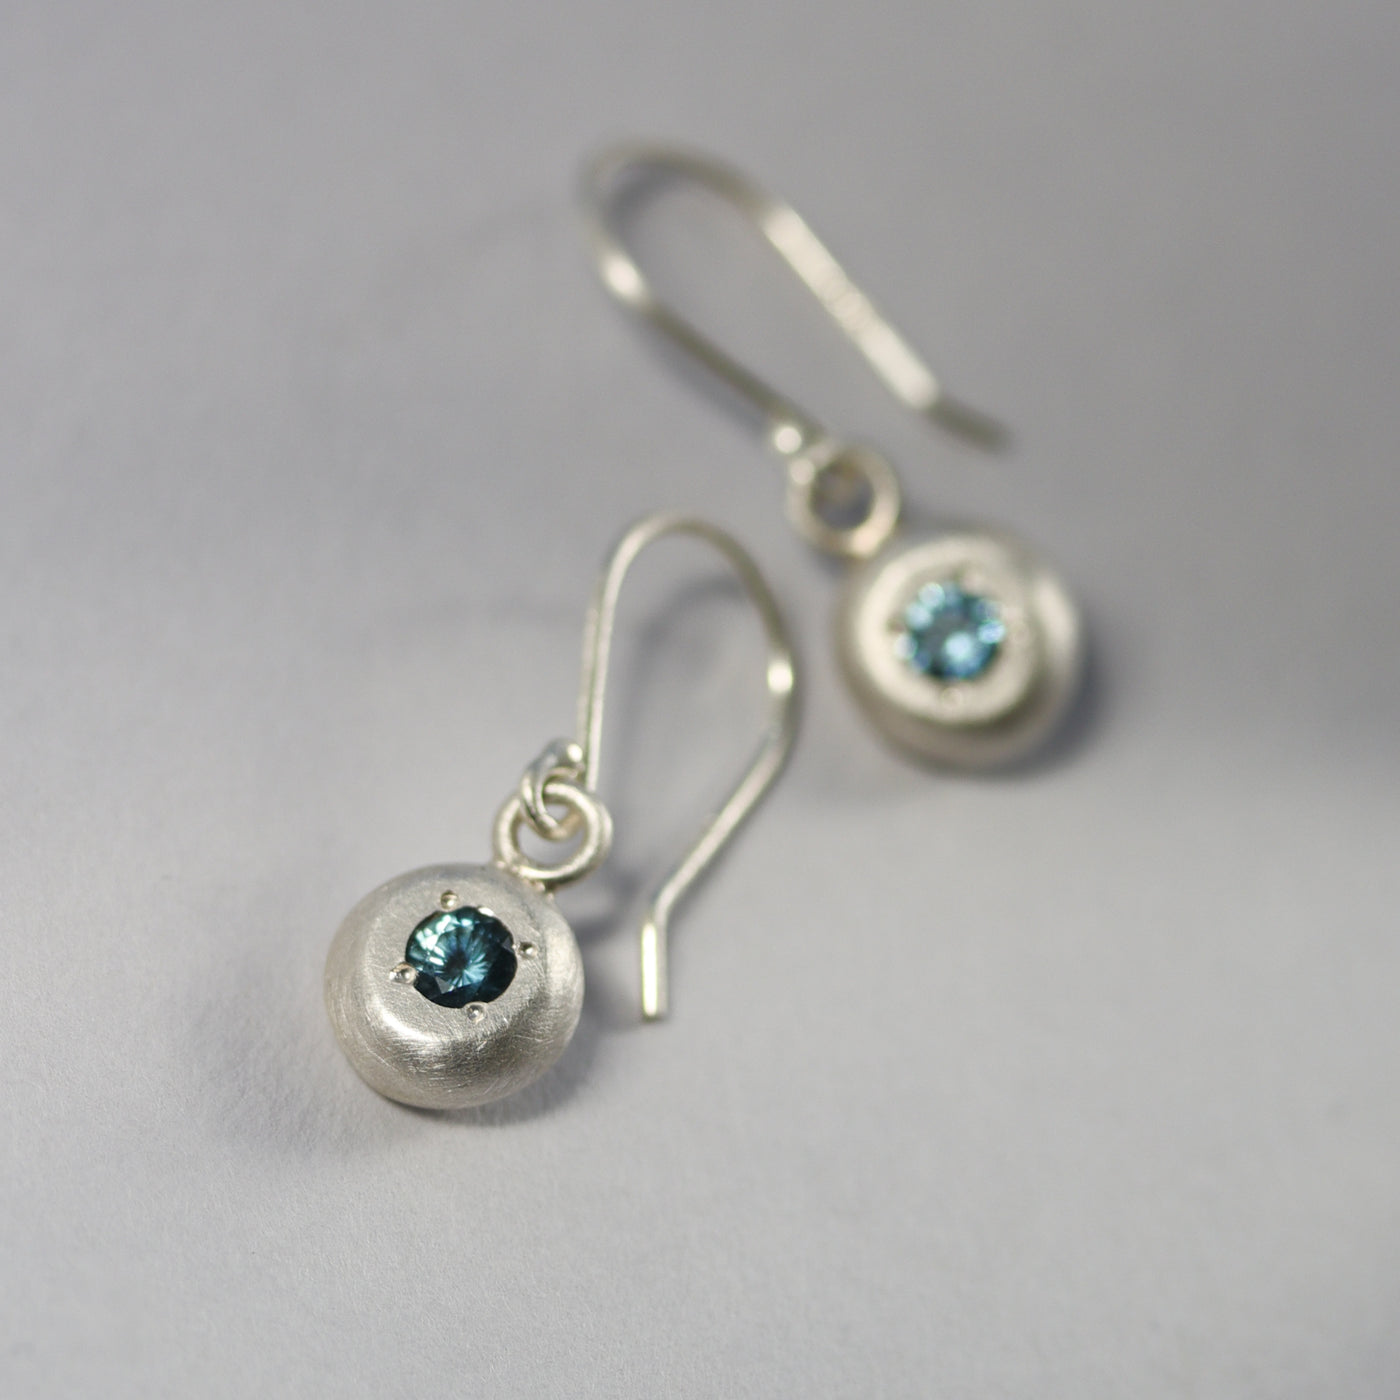 3mm Sapphire Pebble Dangle Earrings •